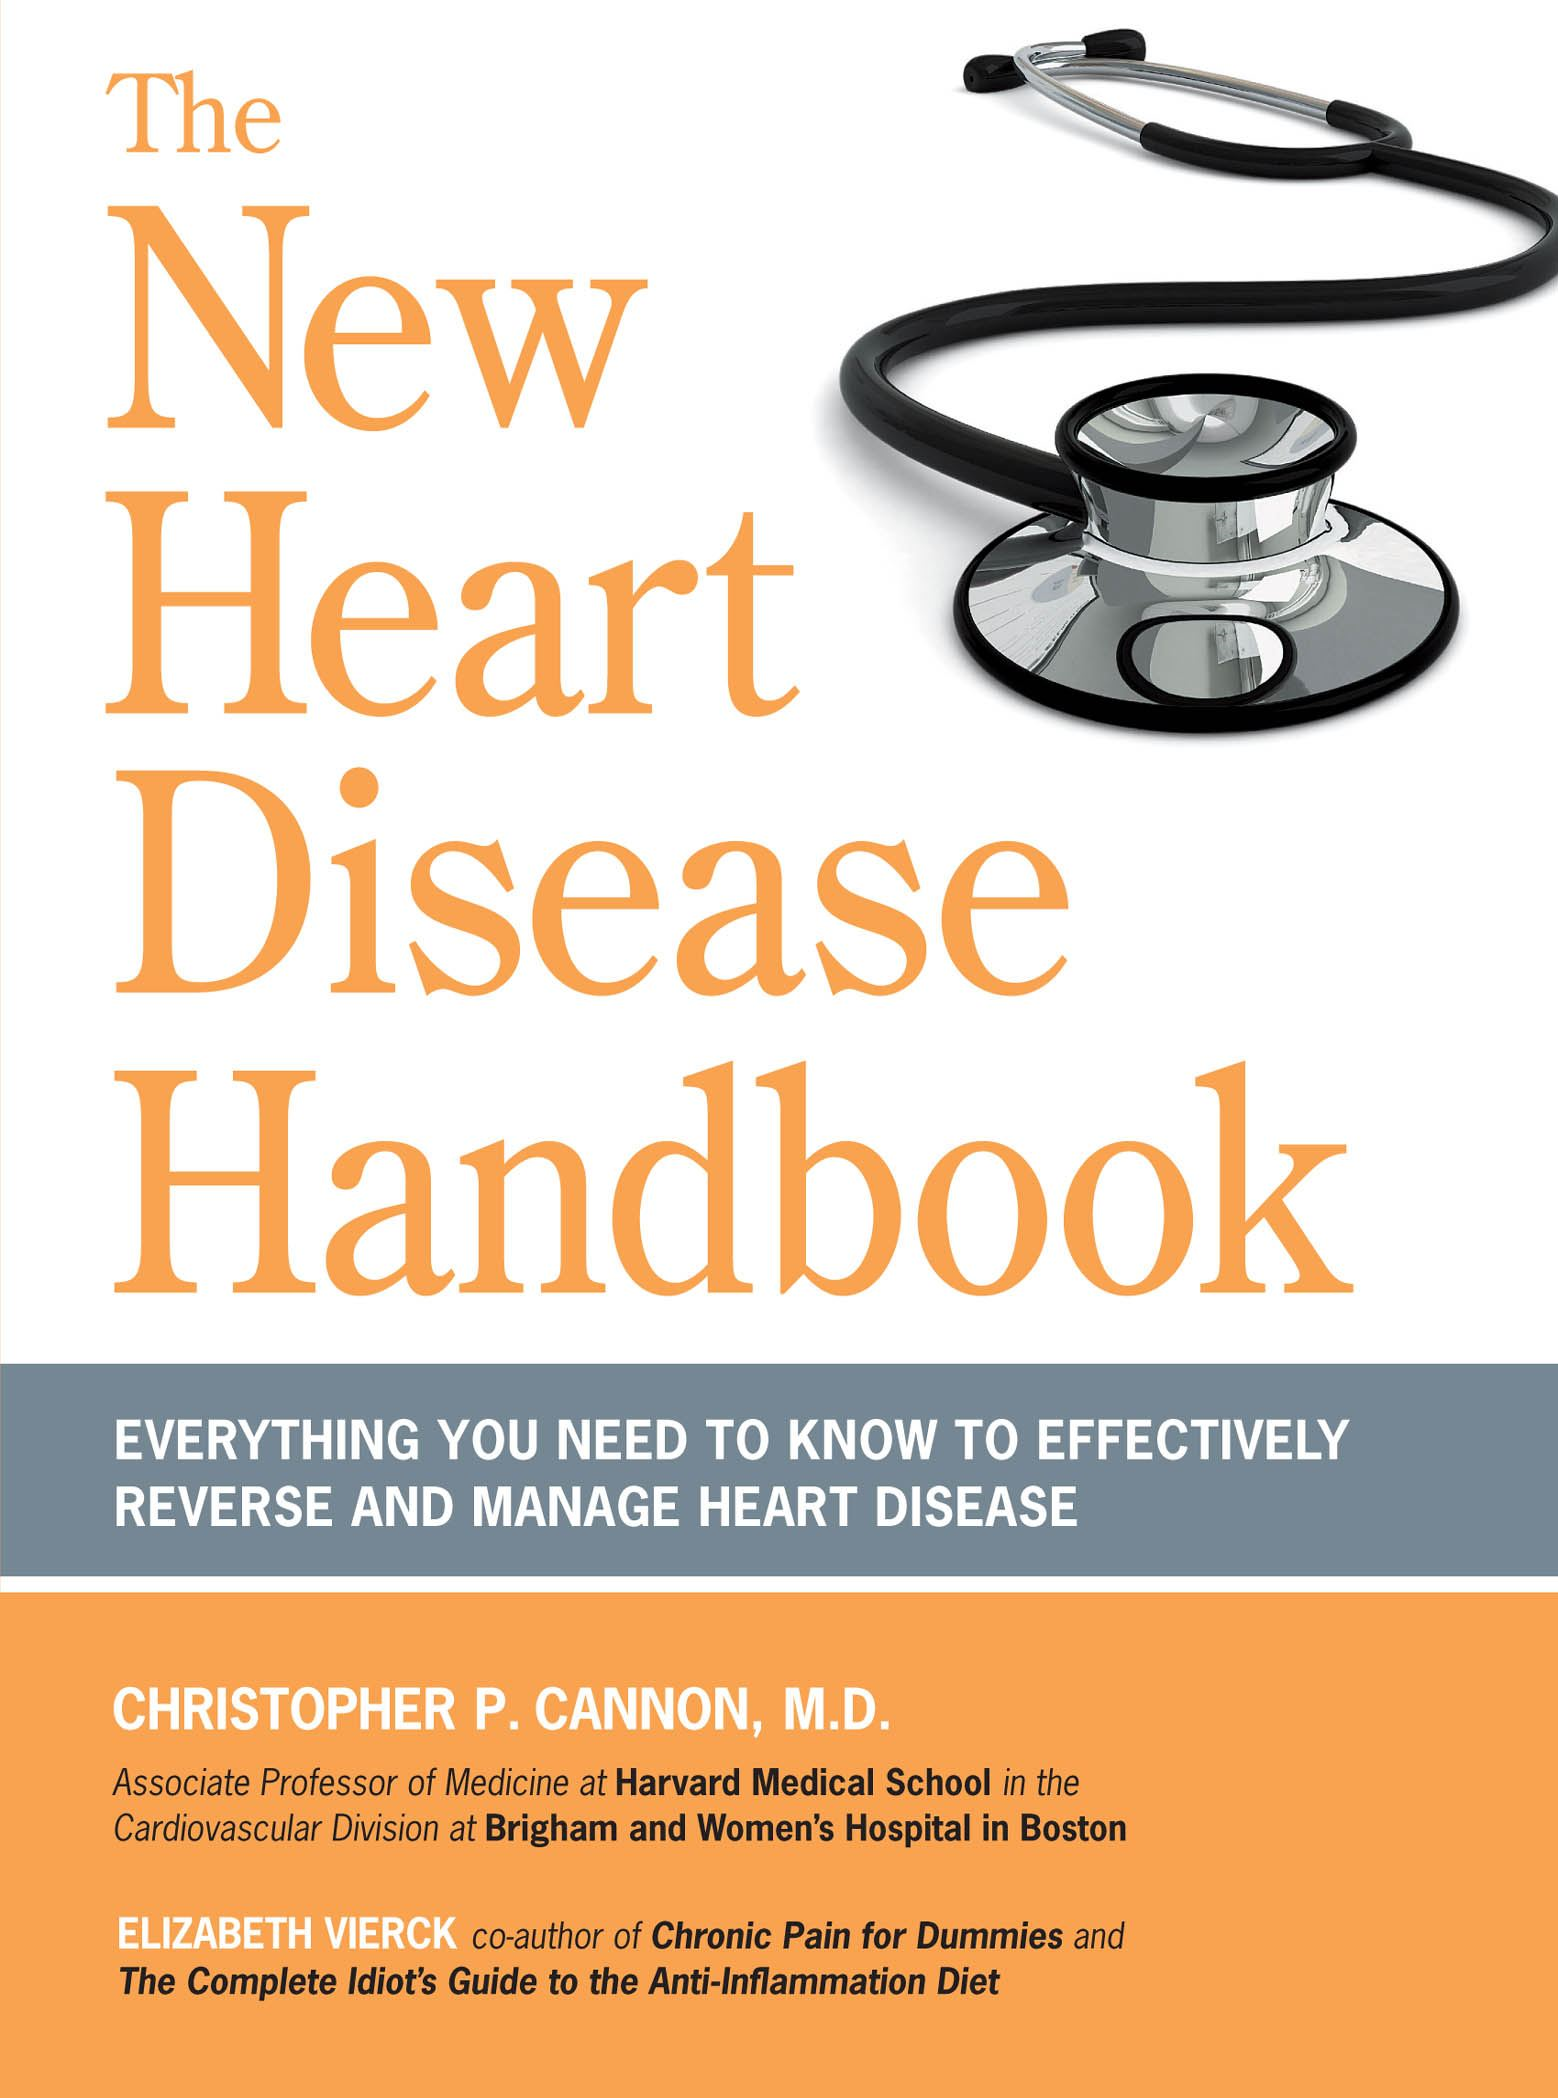 The New Heart Disease Handbook: Everything You Need to Know to Effectively Reverse and Manage Heart Disease By: Christopher P. Cannon M.D.,Elizabeth Vierck